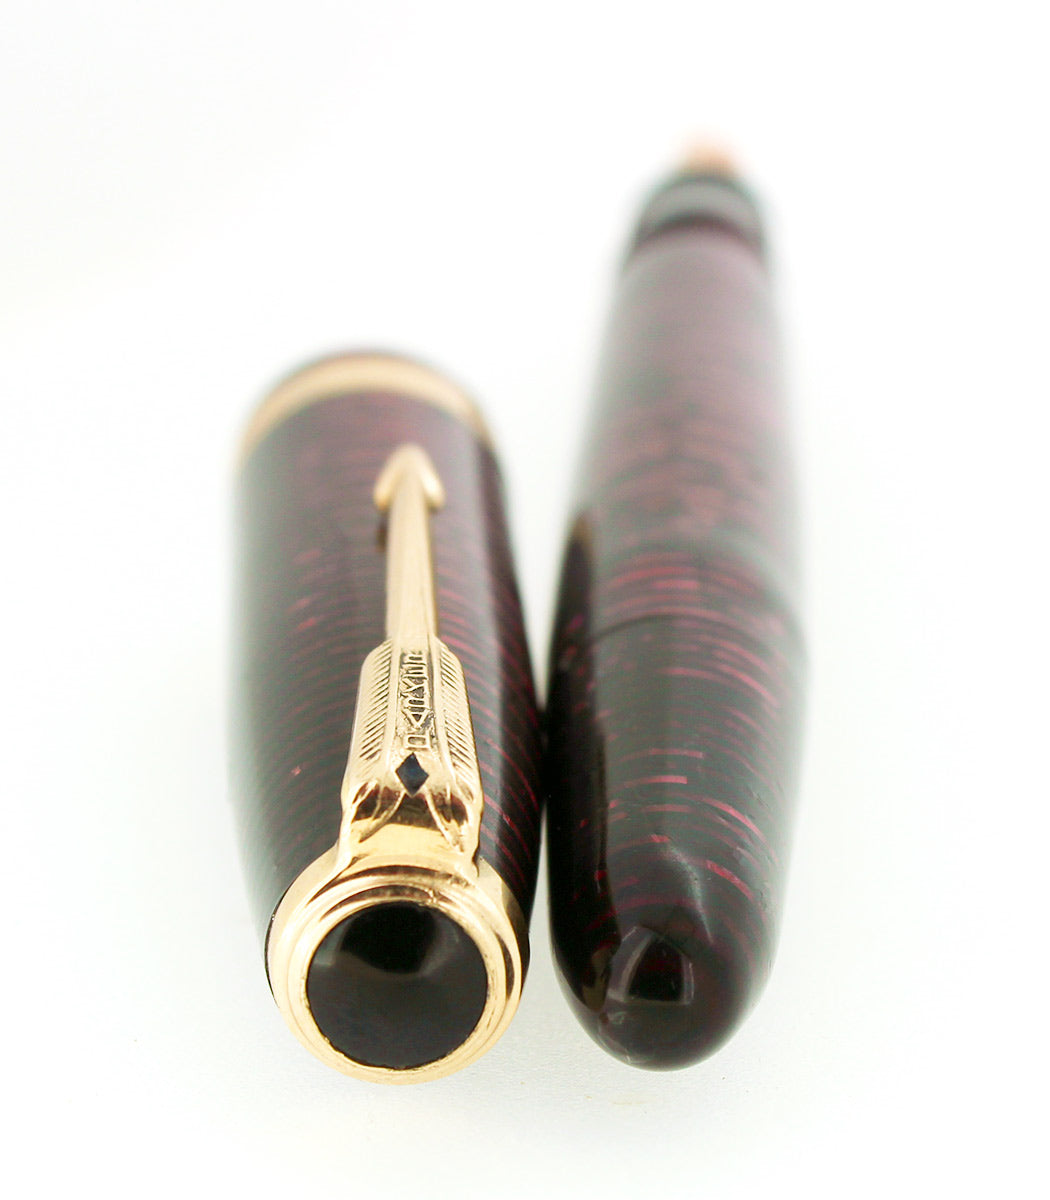 1953 PARKER BURGUNDY PEARL VACUMATIC MADE IN CANADA FOUNTAIN PEN RESTORED OFFERED BY ANTIQUE DIGGER